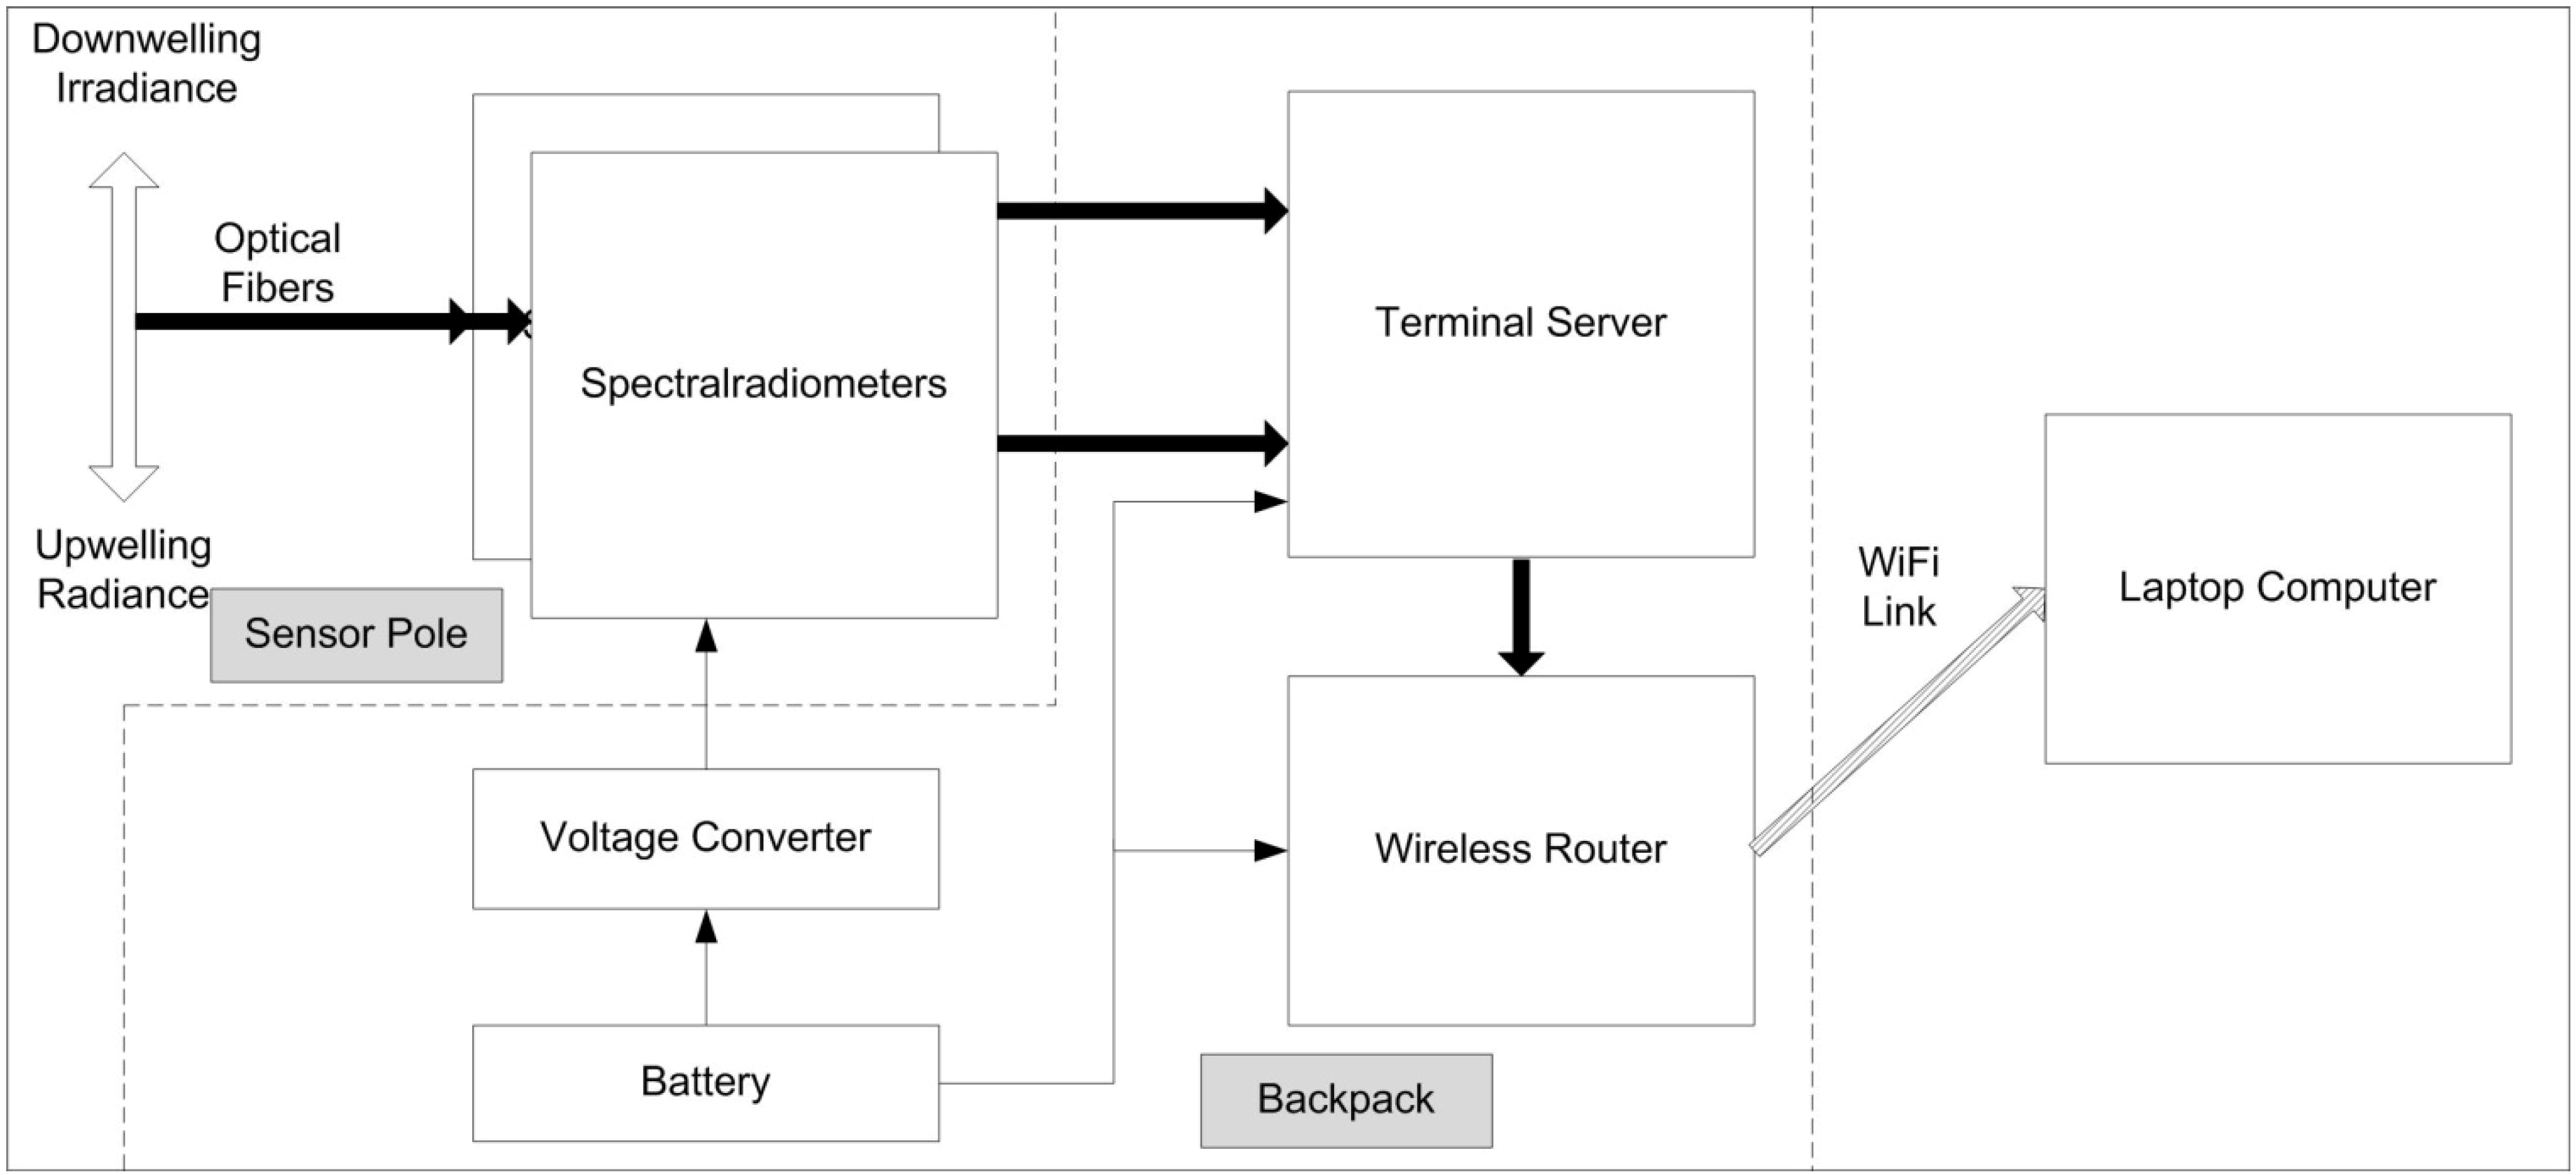 Wireless Router Block Diagram Components - Library Of Wiring Diagrams •